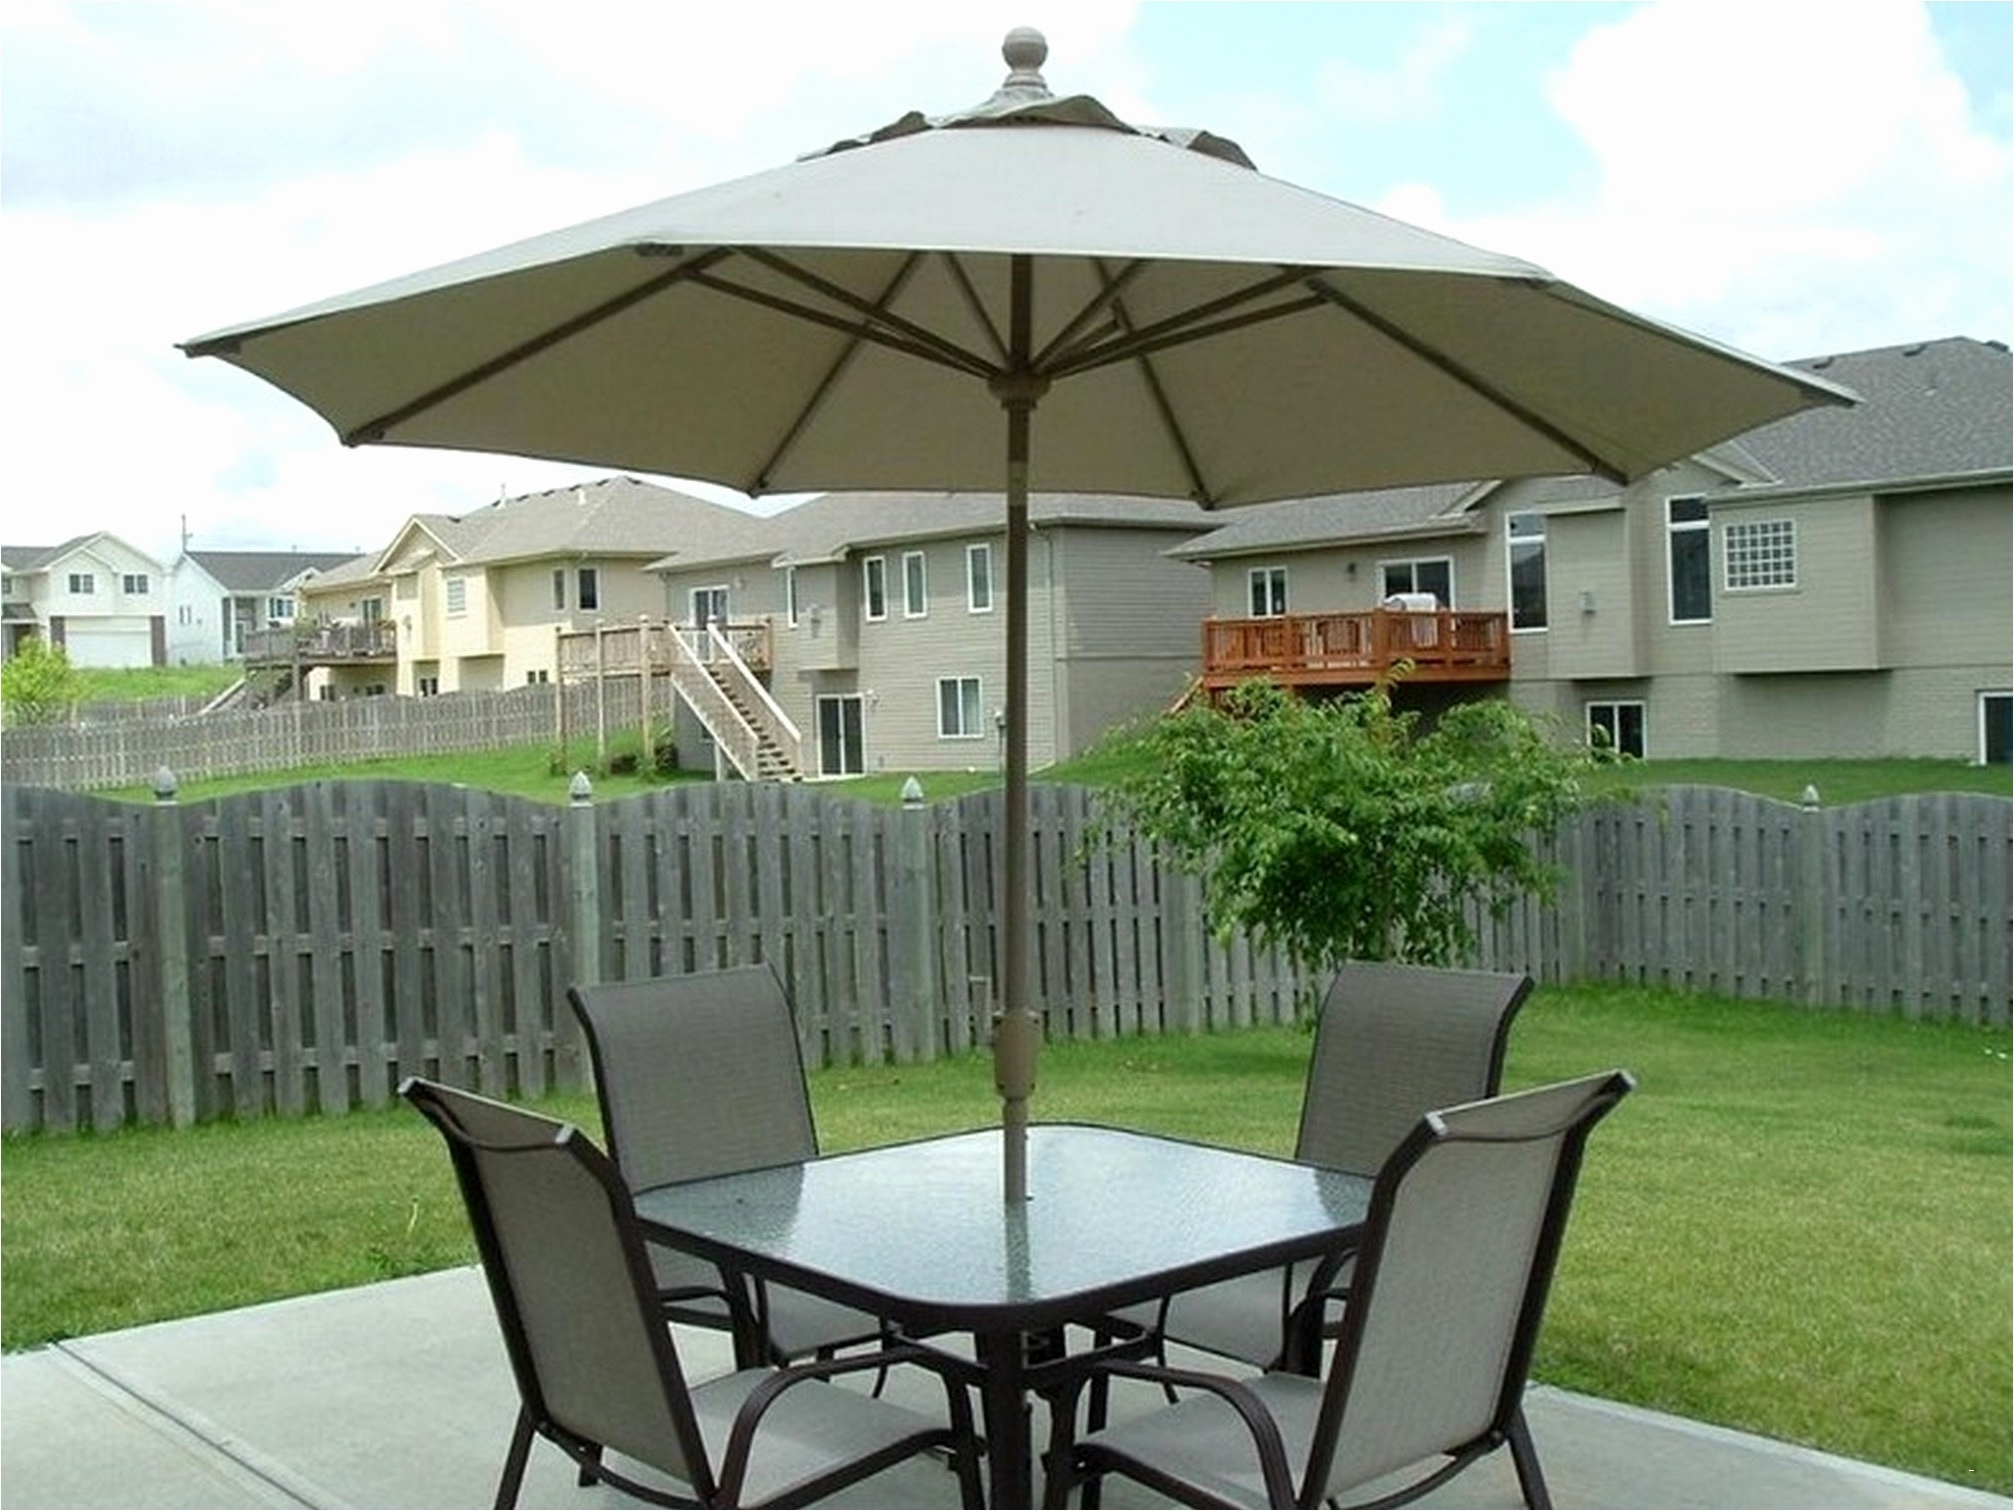 Fashionable Small Patio Tables With Umbrellas Hole With Patio Tables With Umbrella Hole Fresh Small Patio End Table Luxury (View 7 of 20)